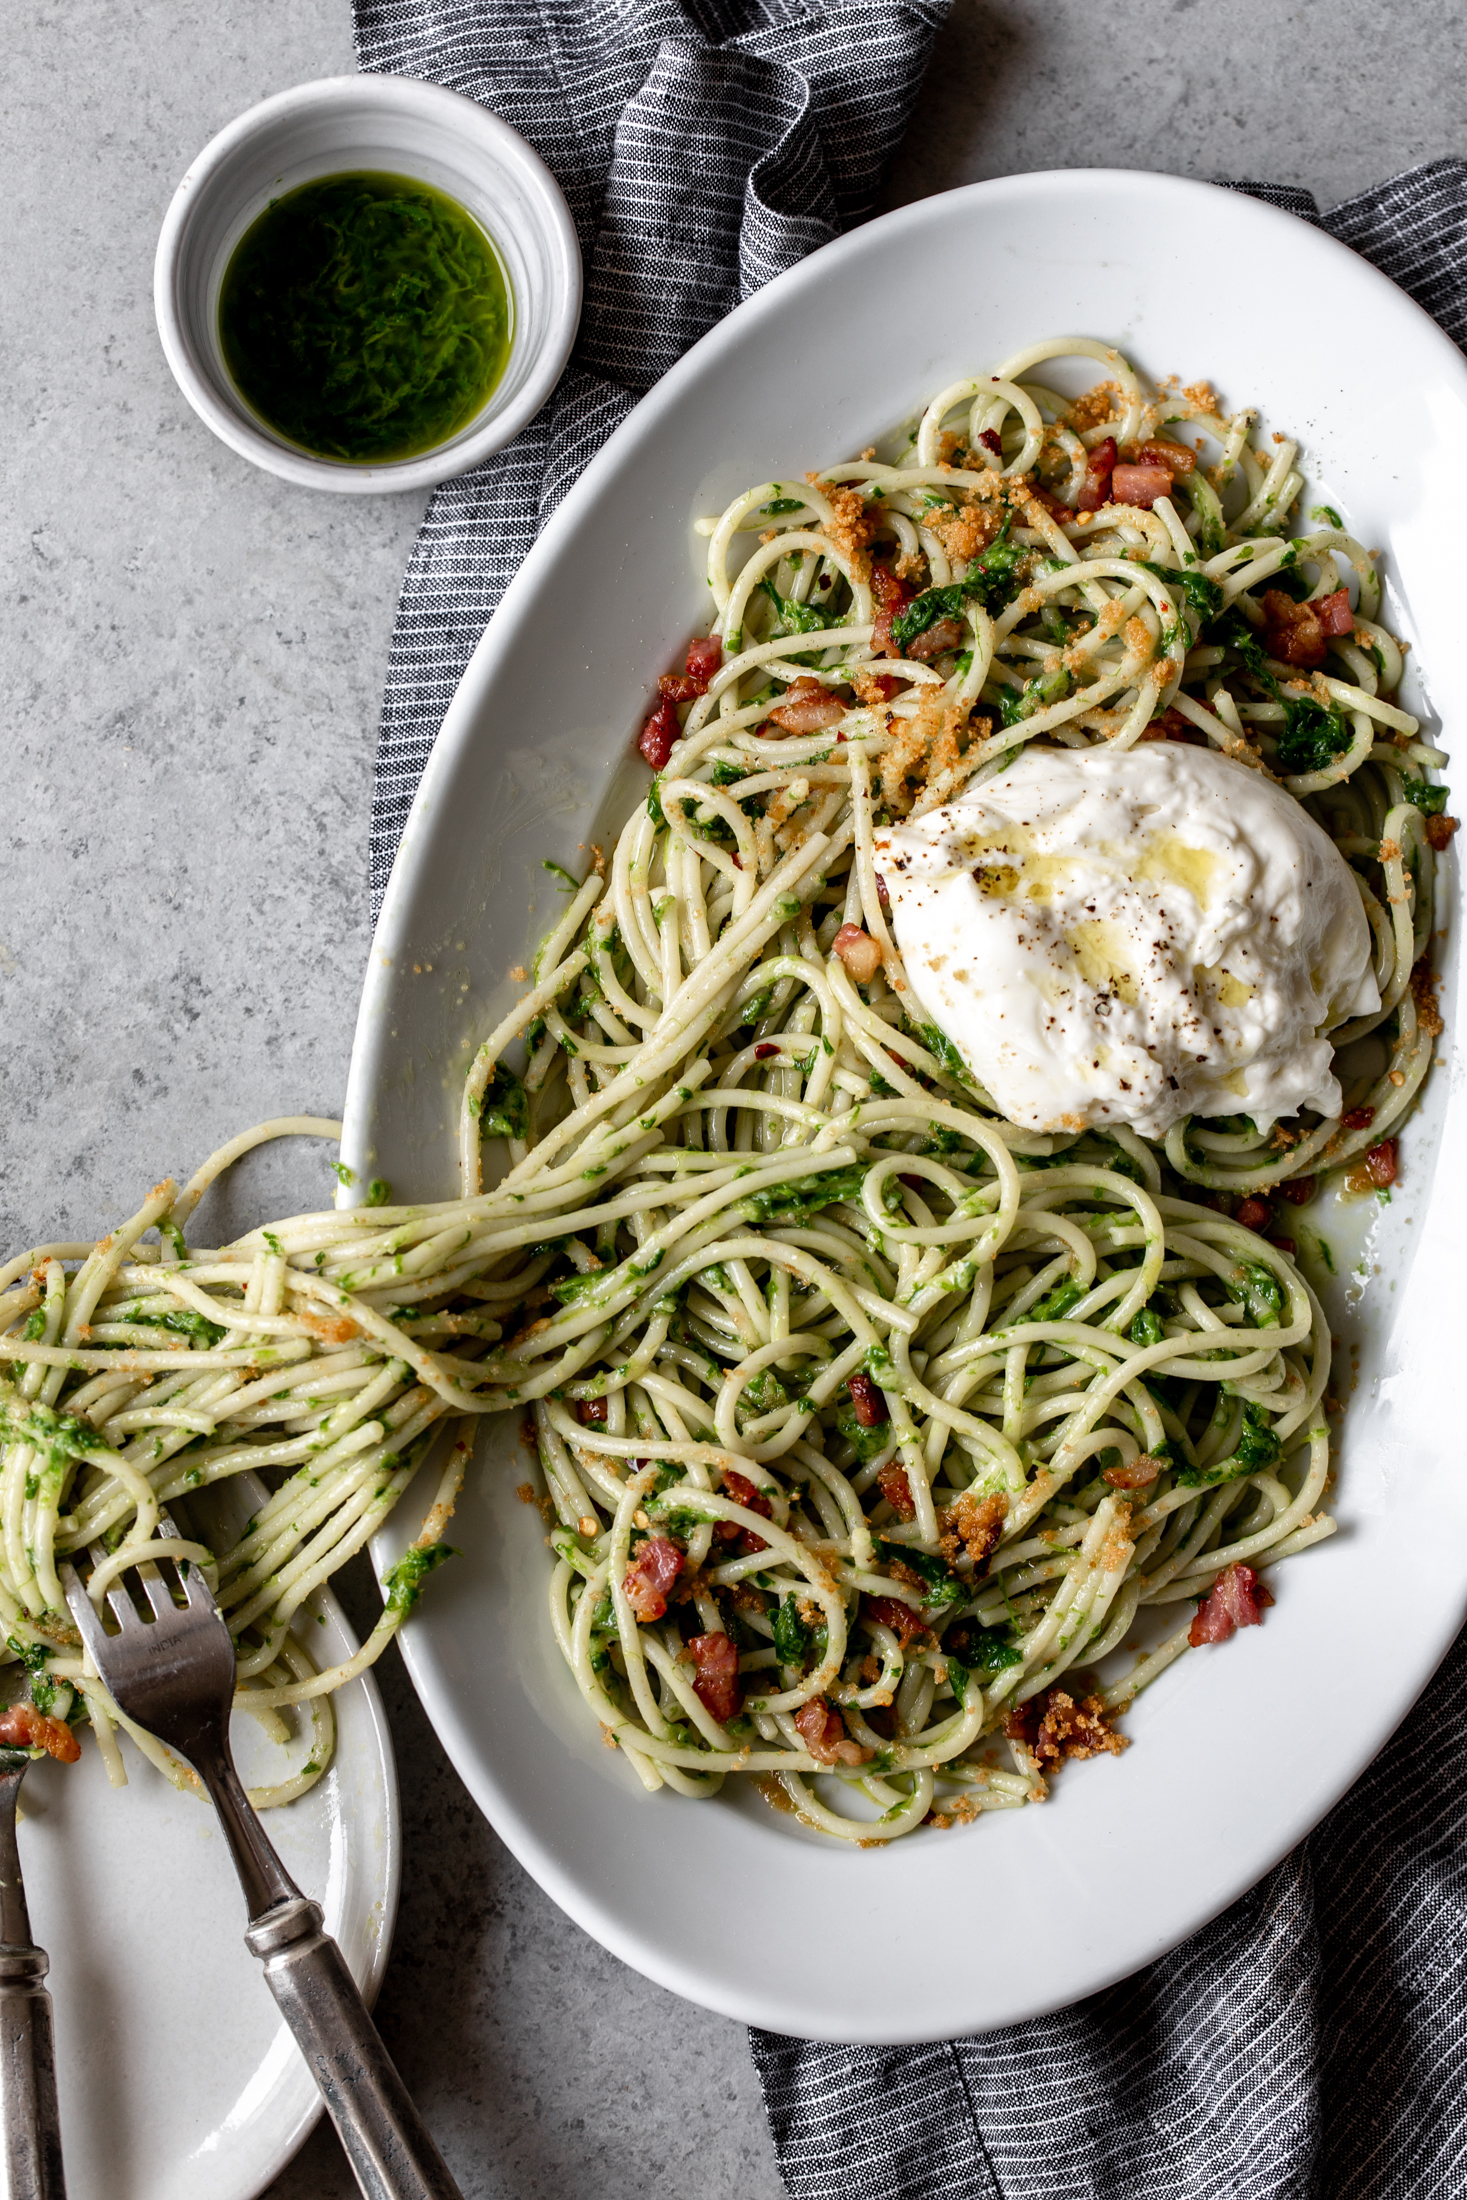 Ramp Pesto Spaghetti with Burrata recipe from cooking with cocktail rings